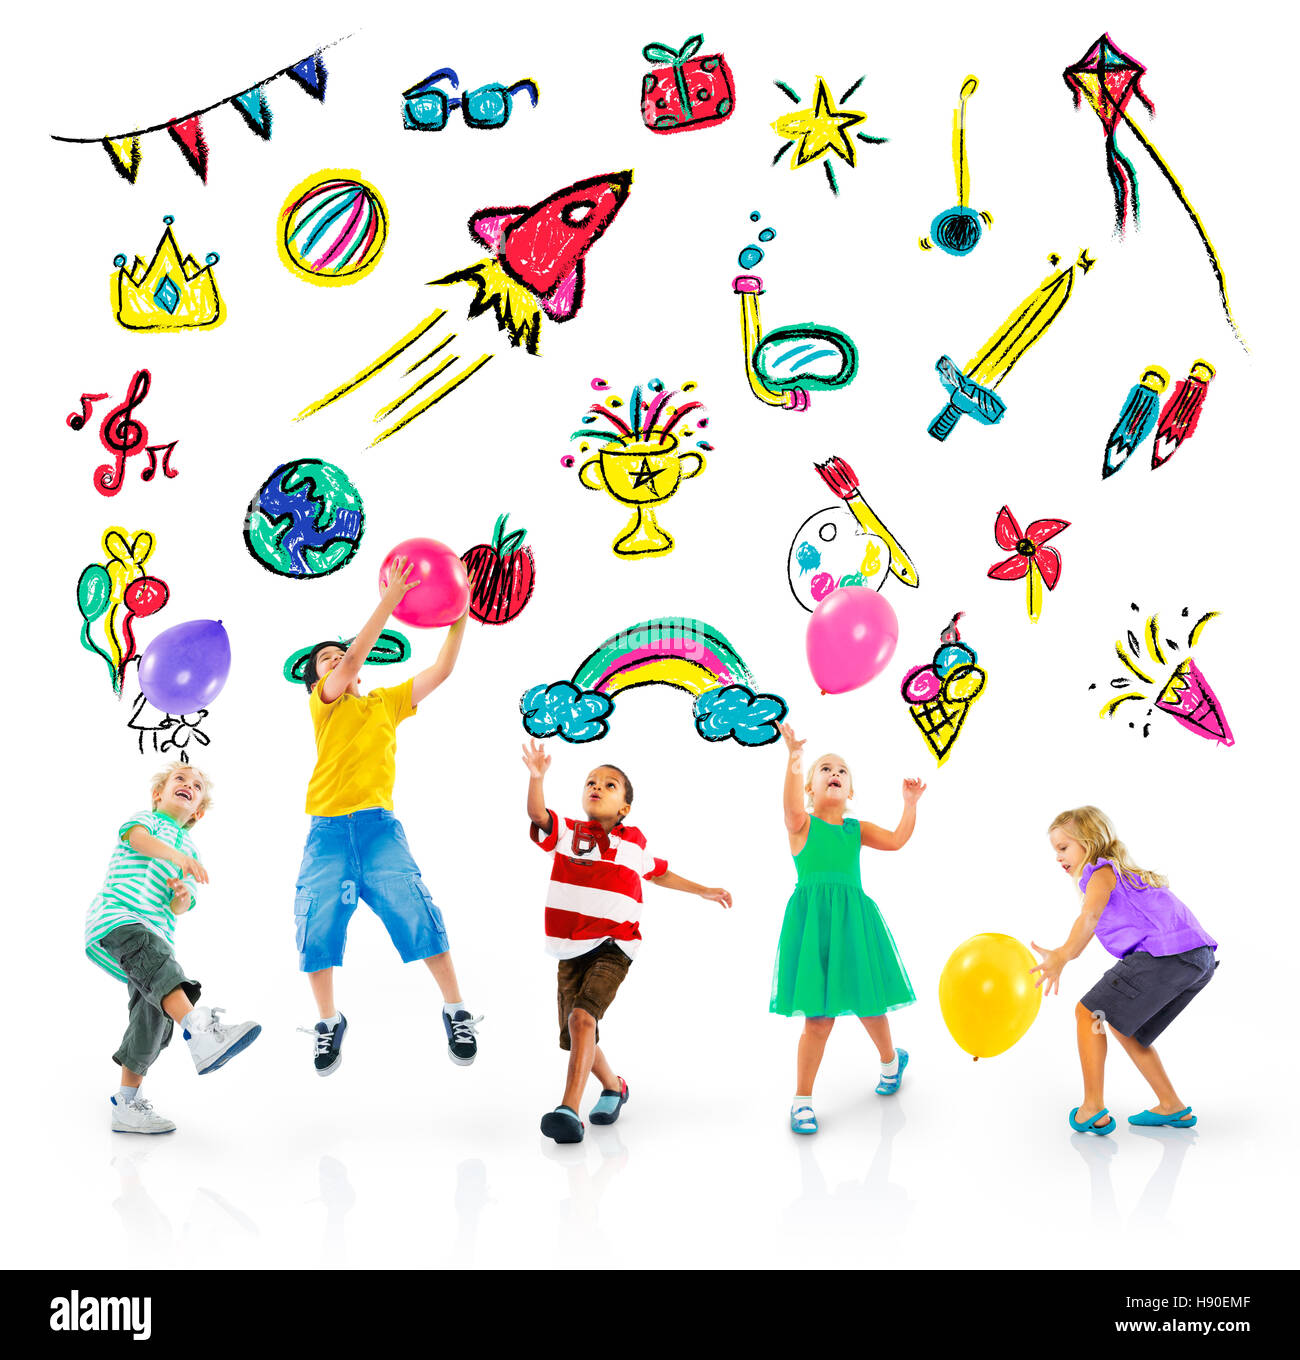 Kids Childhood Leisure Activity Education Concept - Stock Image